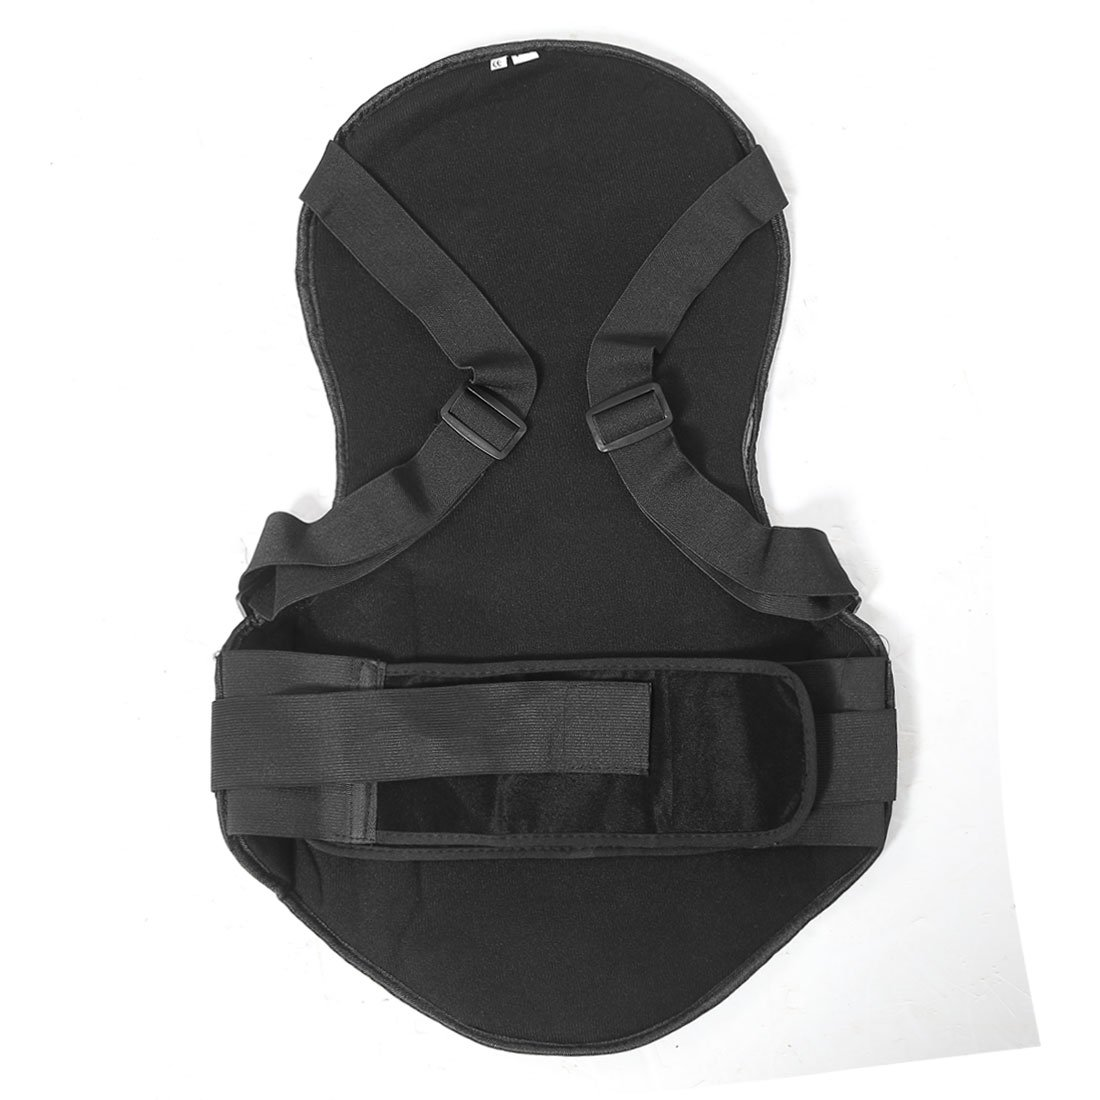 uxcell Black Motorcycle Street Sport Bike Protective Armor Back Spine Protector Guard L a16032200ux0823